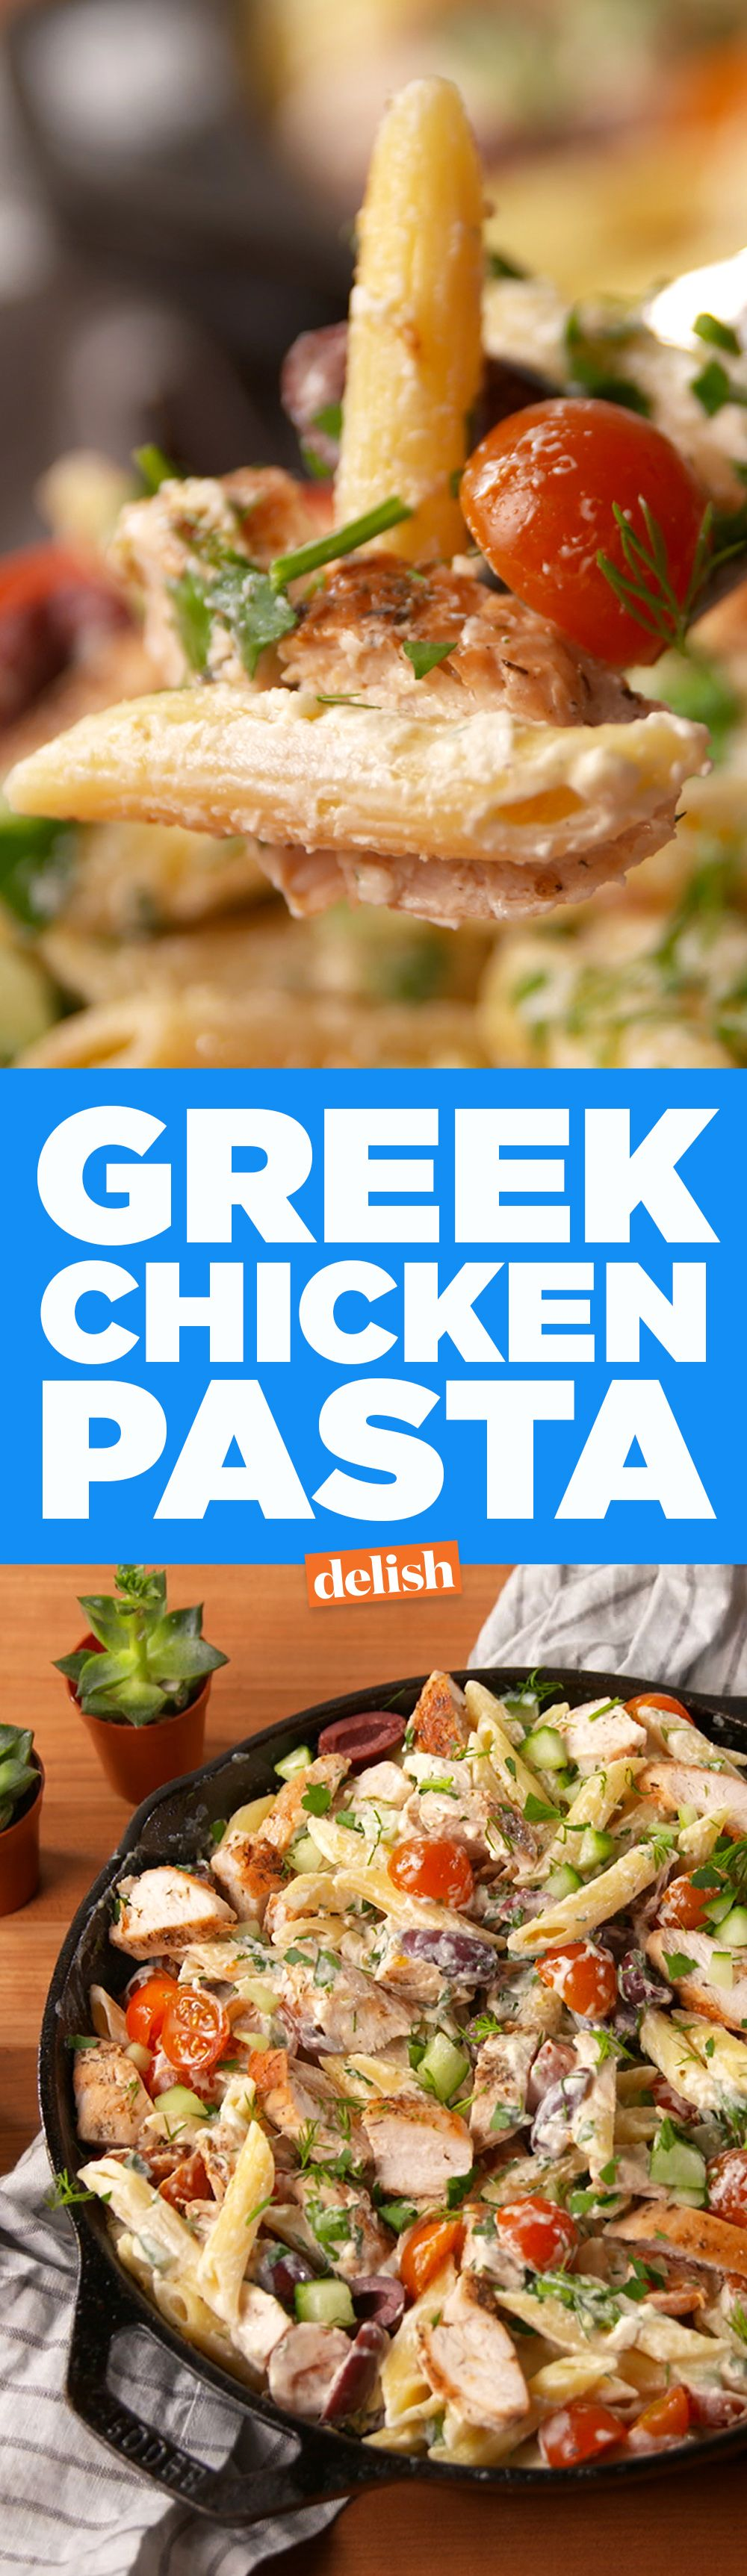 This Greek Chicken Pasta tastes like summer. Get the recipe on Delish.com.